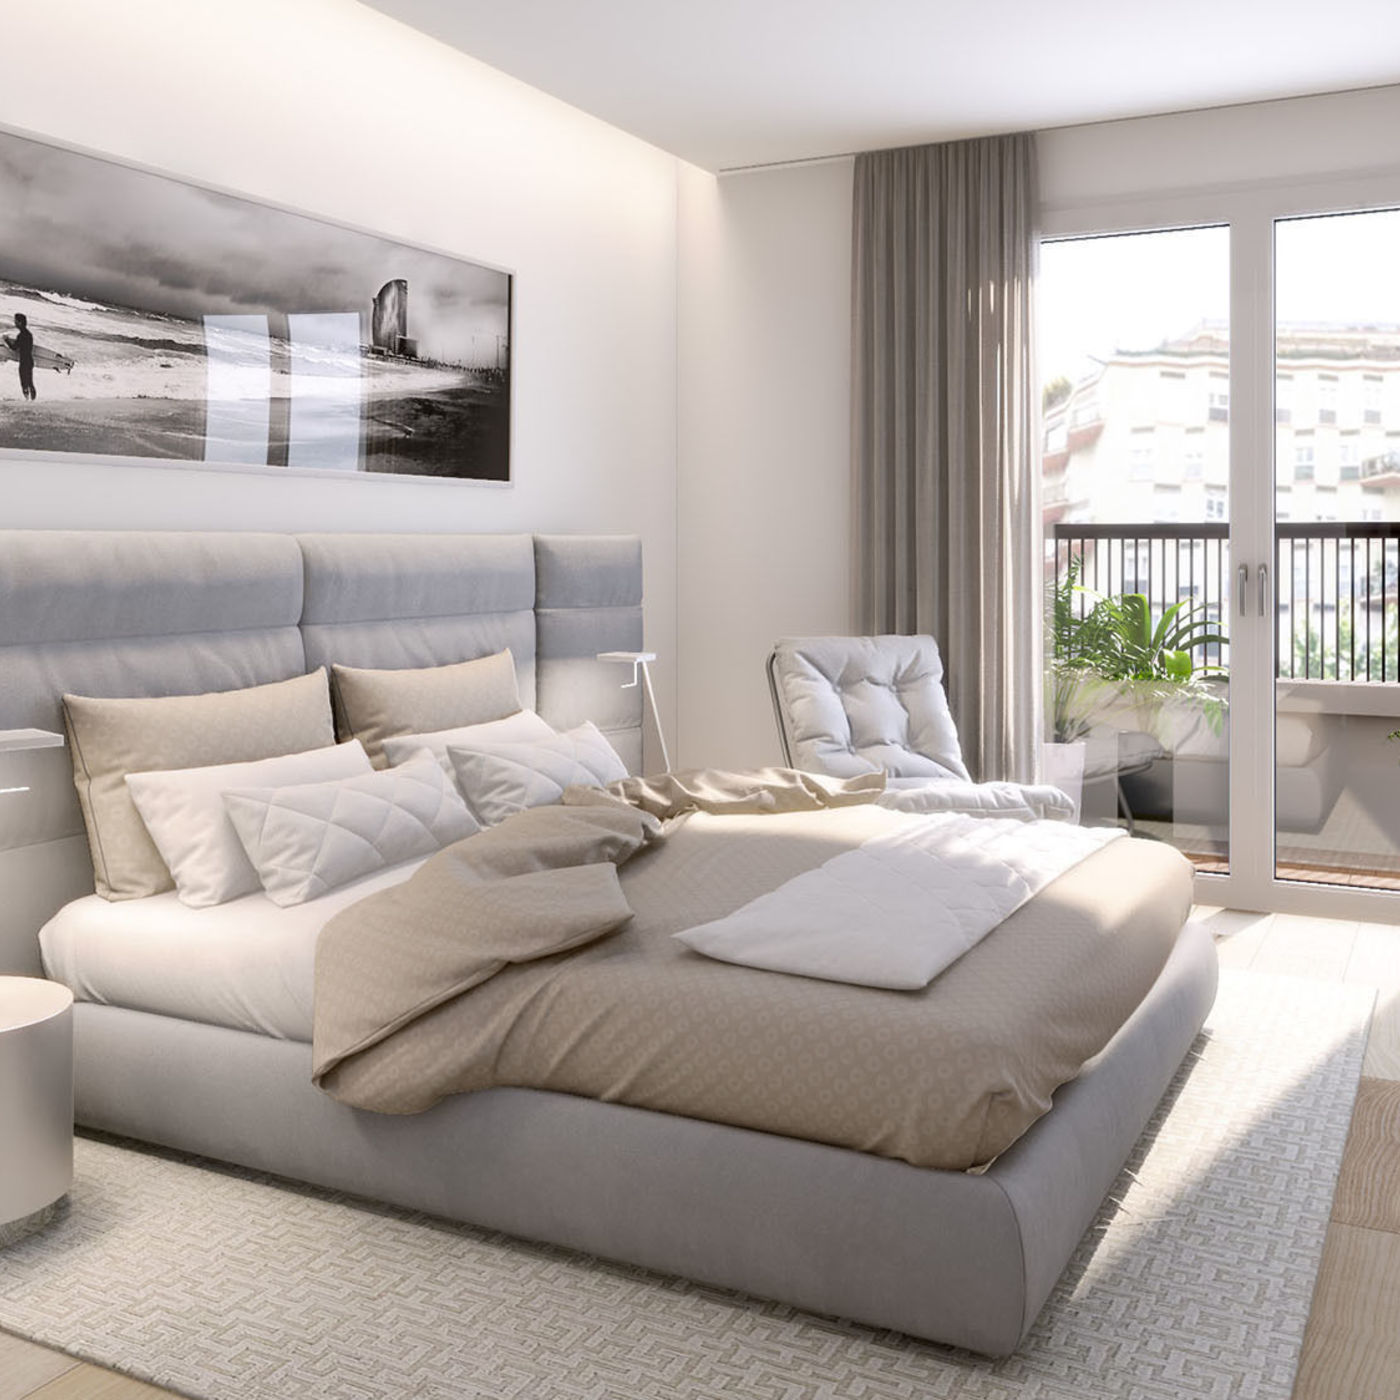 3D BEDROOM FOR A REAL ESTATE AGENCY PROMOTER